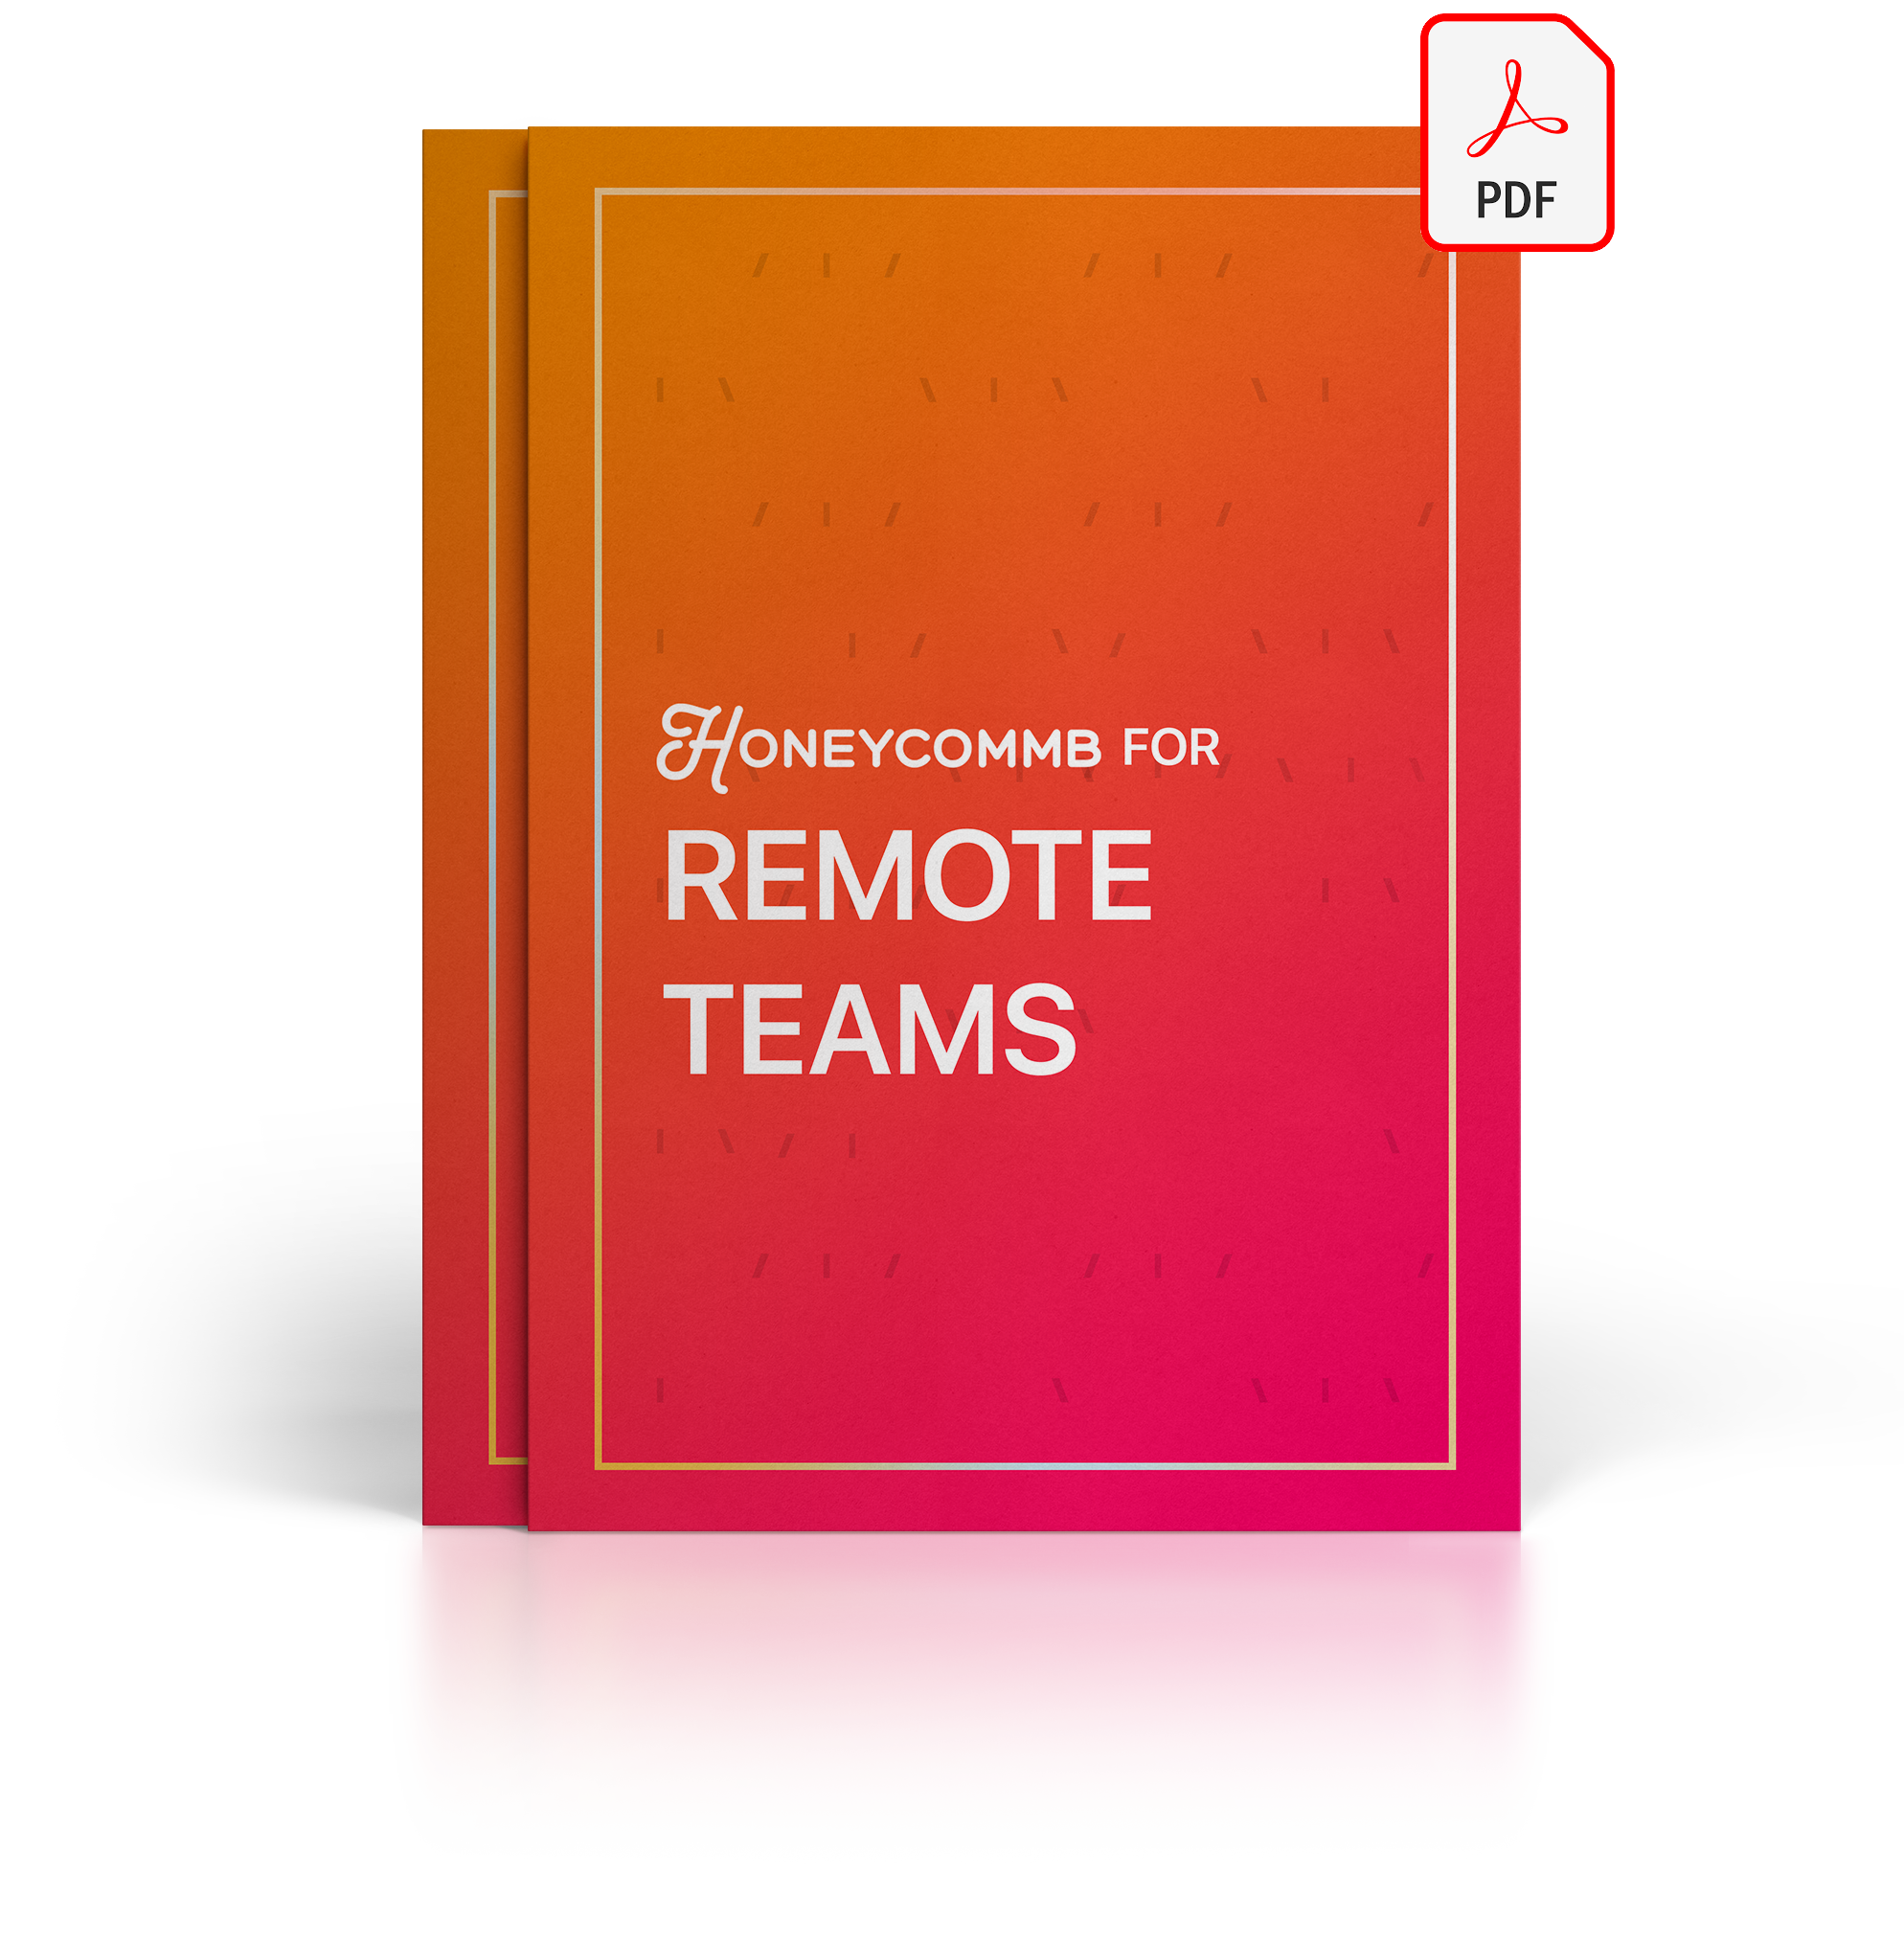 Honeycommb-for-remote-teams